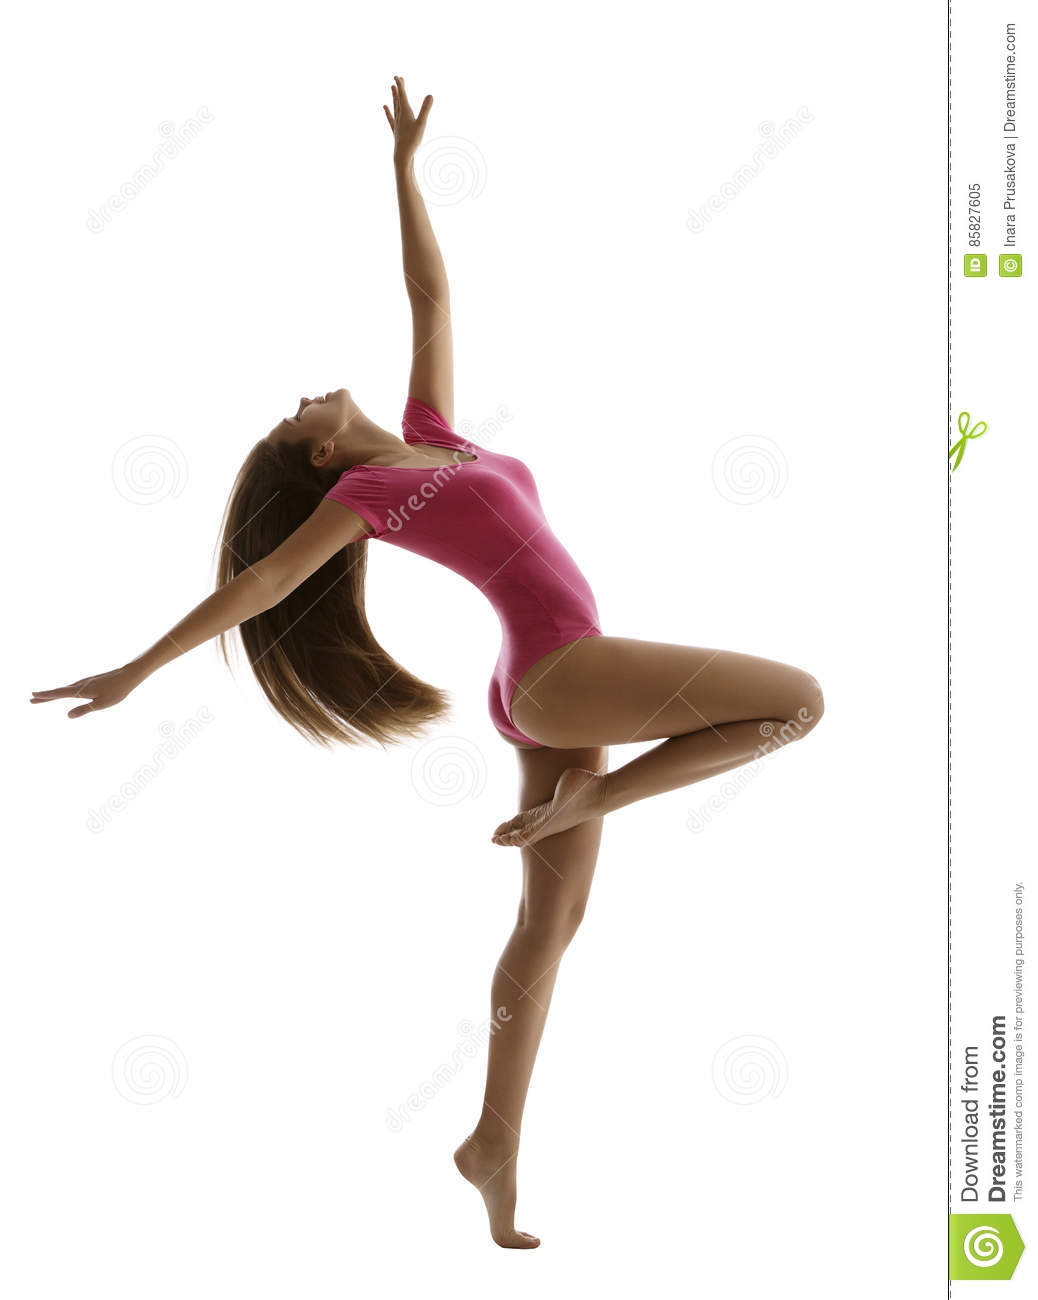 woman sport dancing, girl fitness dancer, young gymnast stock image